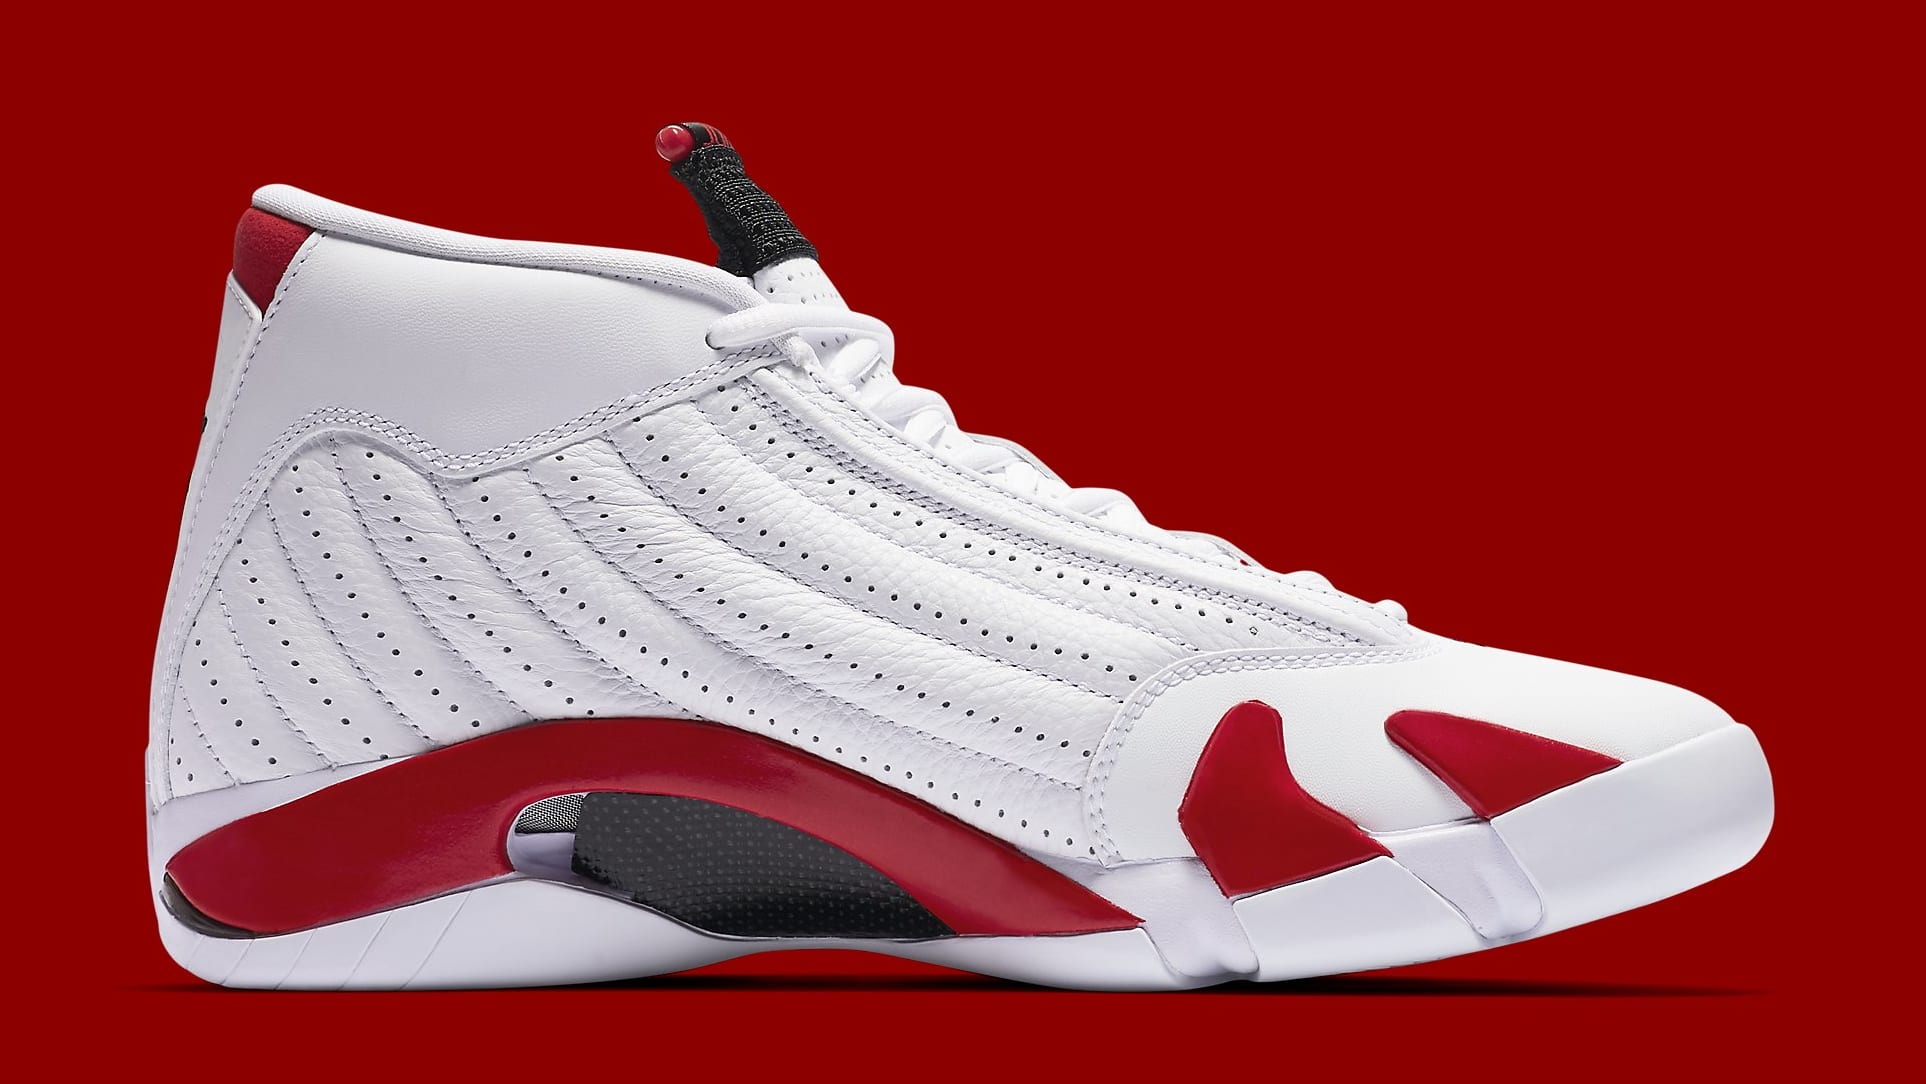 5371165e81347b Image via Nike Air Jordan 14 Retro  Candy Cane 2019  487471-100 Medial